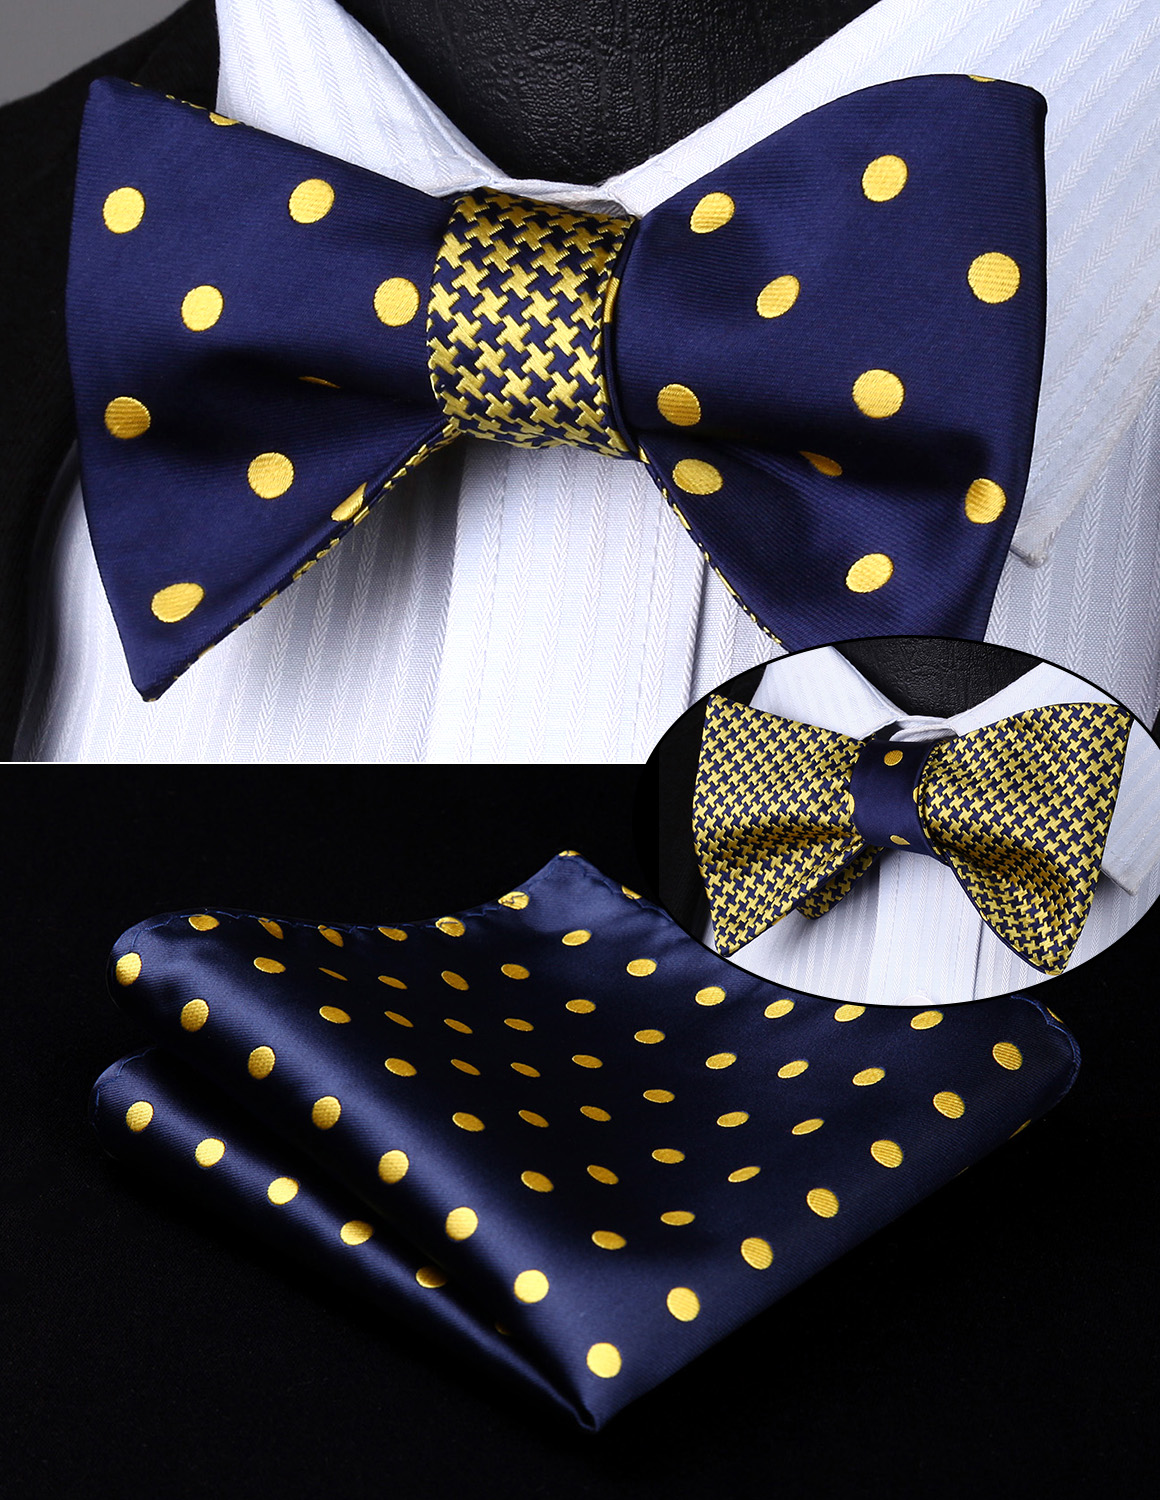 BE04YS Blue Dot Geometric Double Side Bowtie Men Silk Self Bow Tie Hanky Set Pocket Square Classic Party Wedding